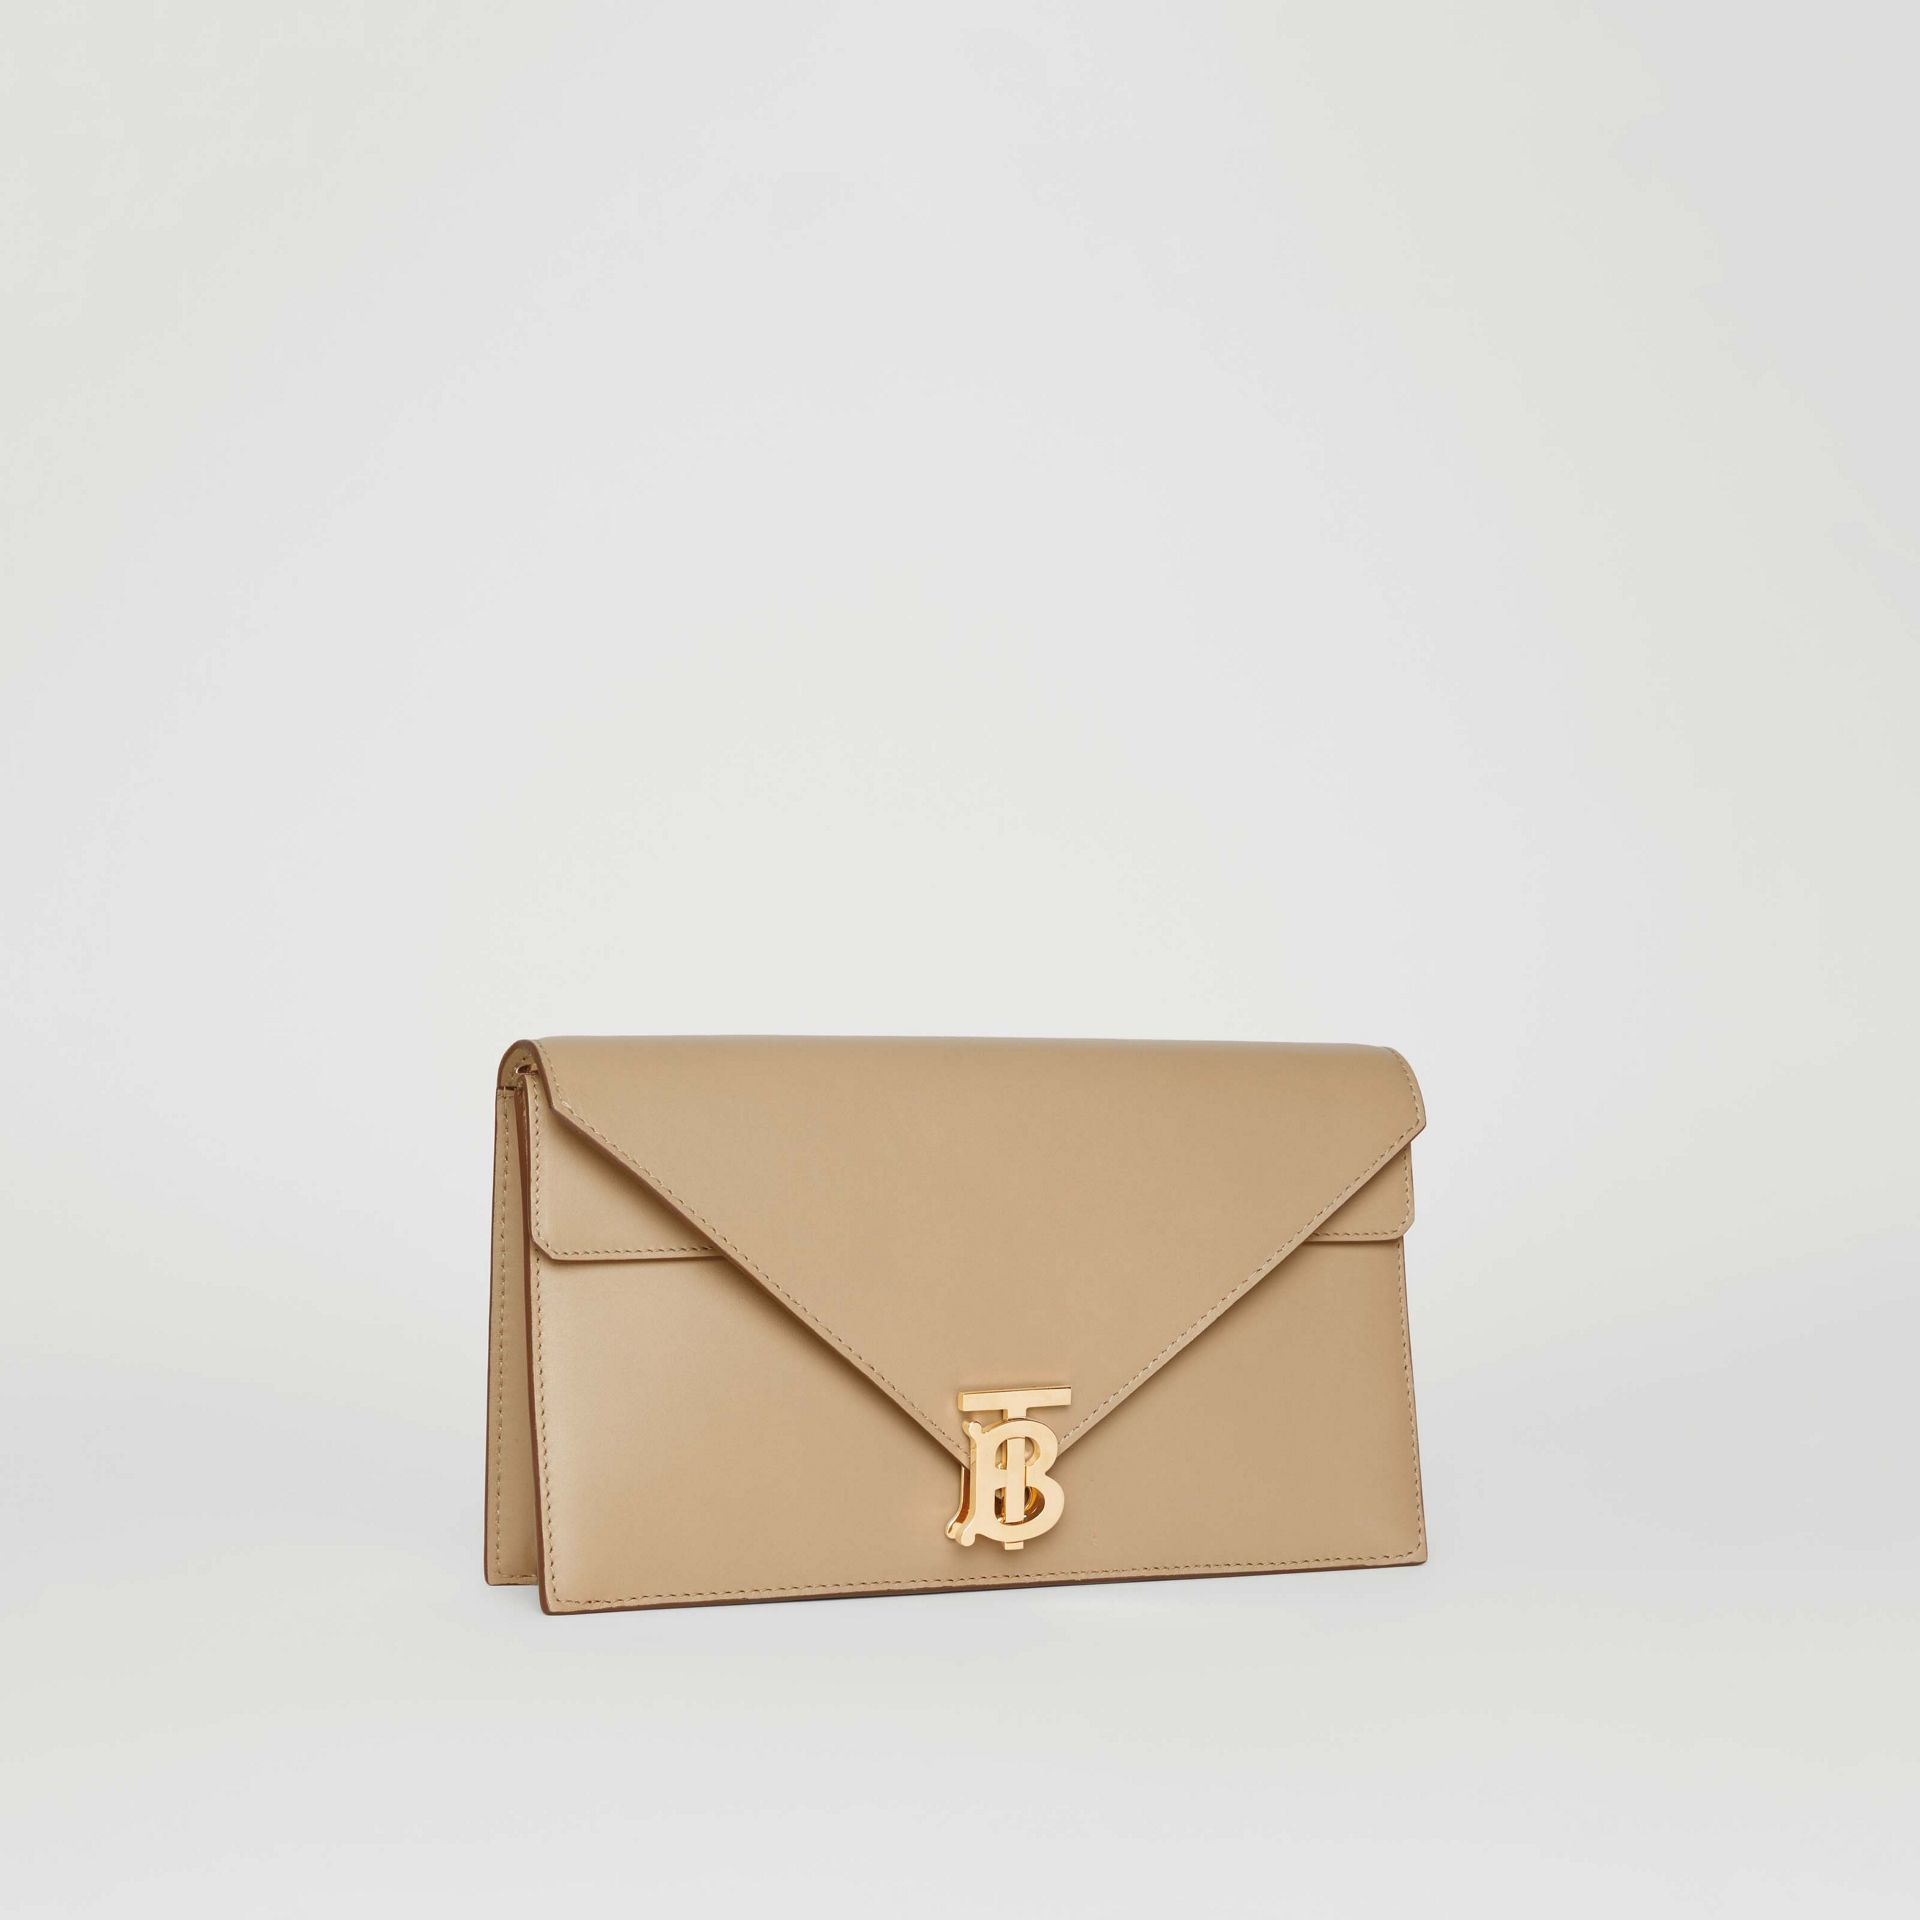 Small Leather TB Envelope Clutch in Honey - Women | Burberry United States - gallery image 6